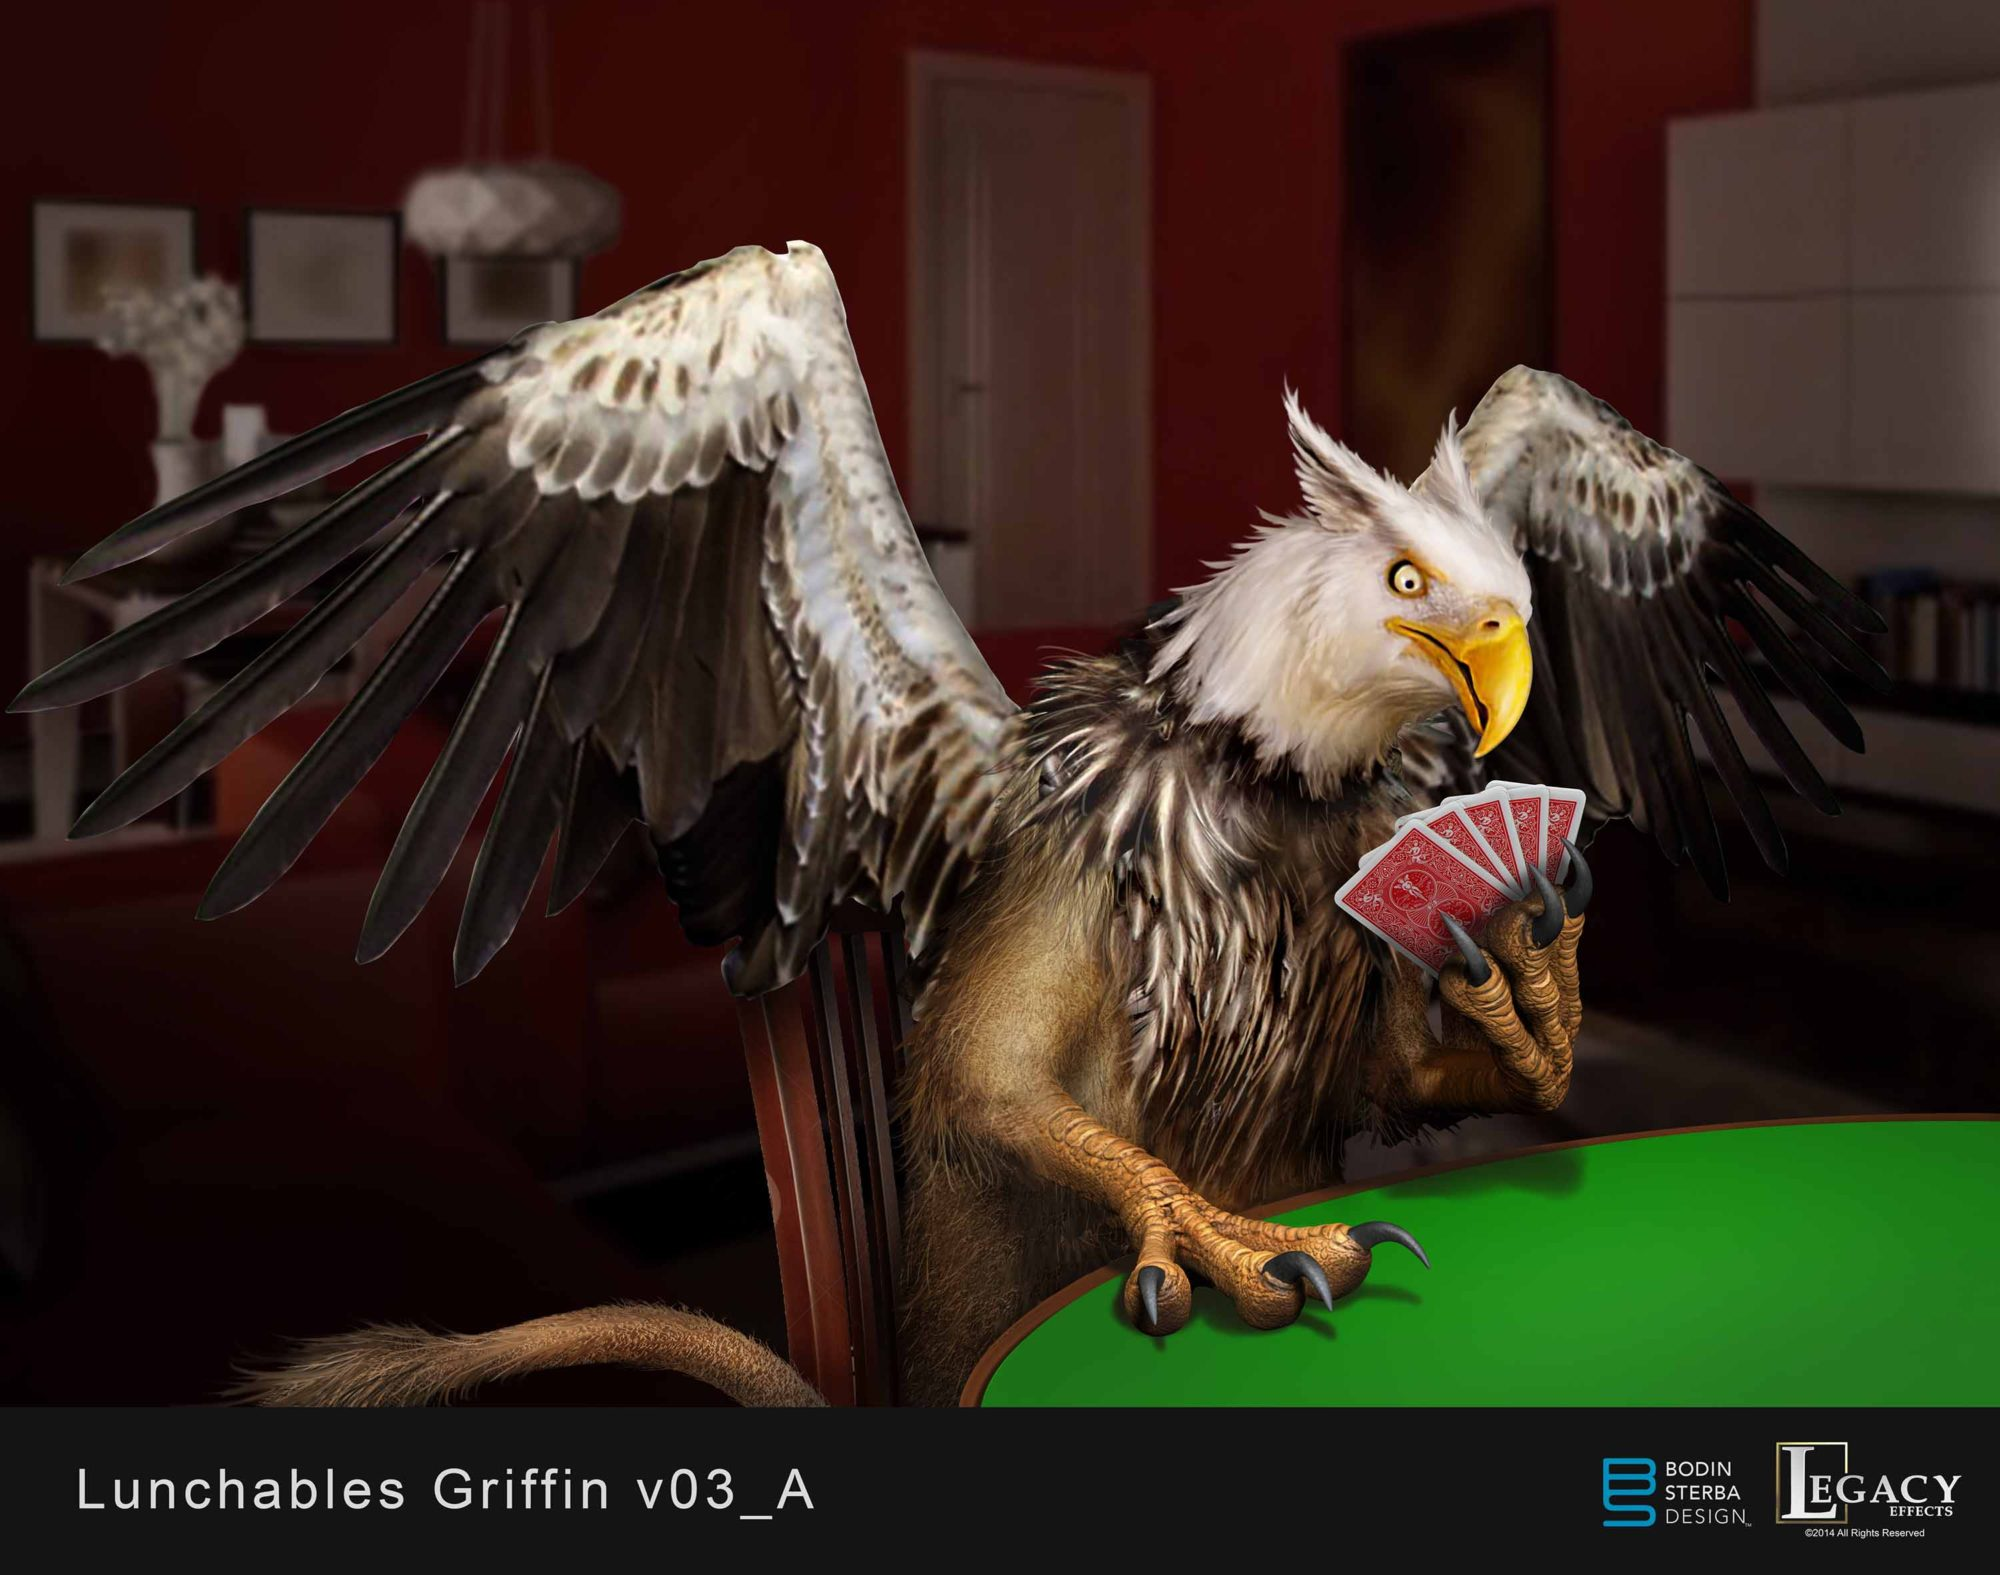 Recent work bodin sterba design part 2 for The griffin